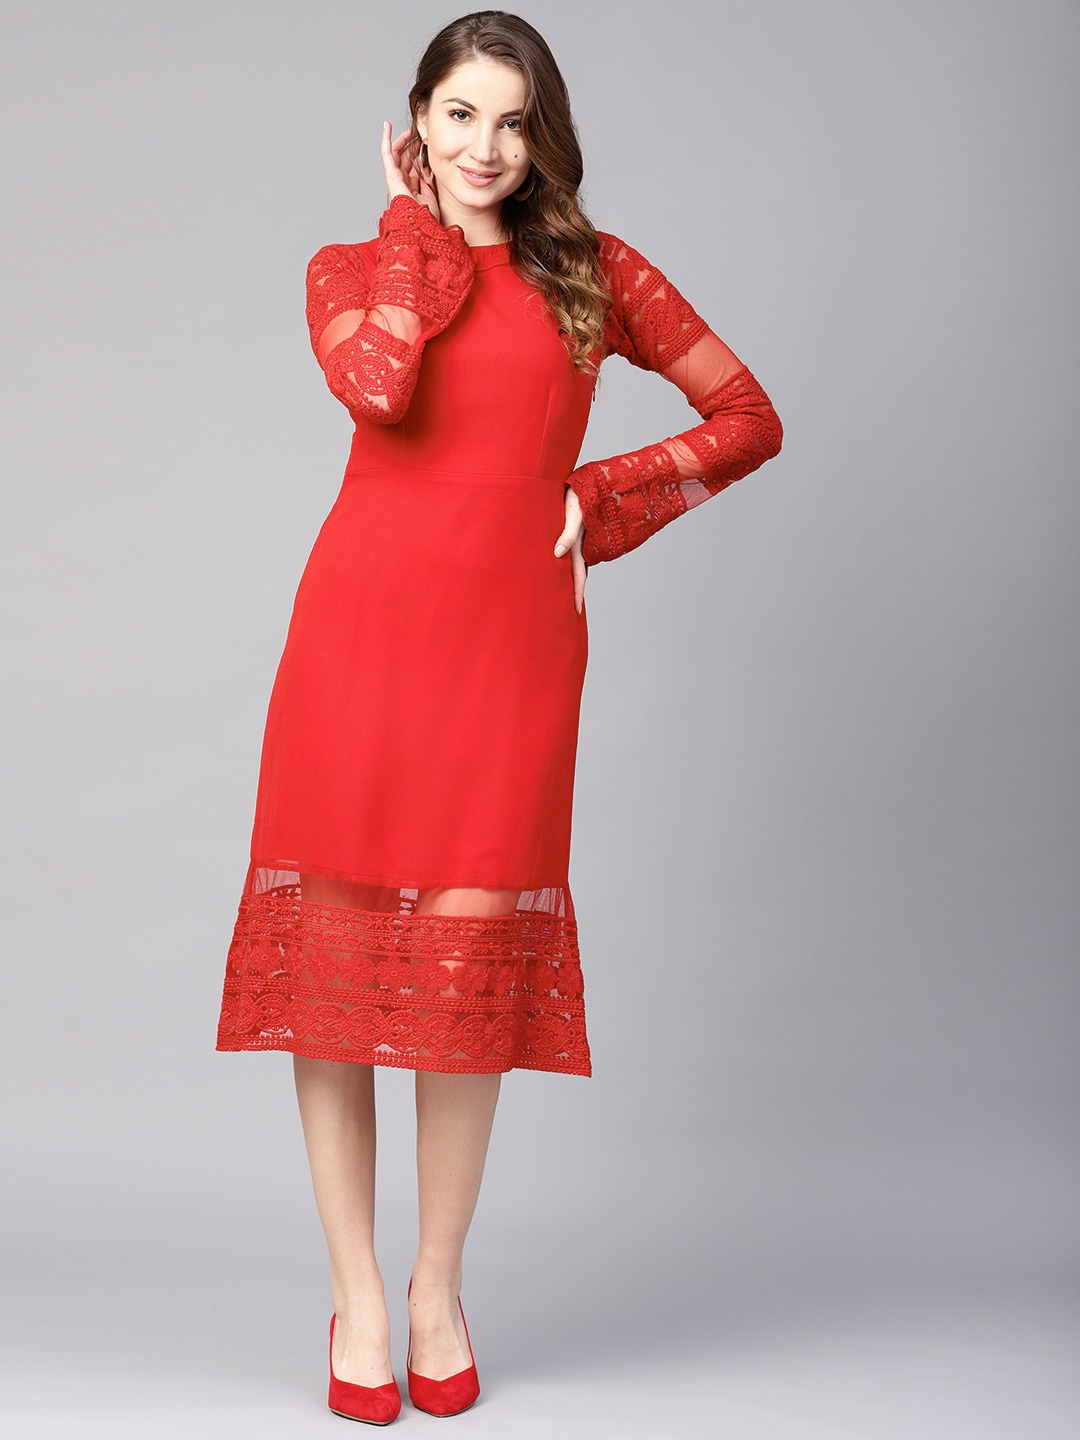 401ee5bddf Red Dress - Buy Trendy Red Colour Dresses Online in India